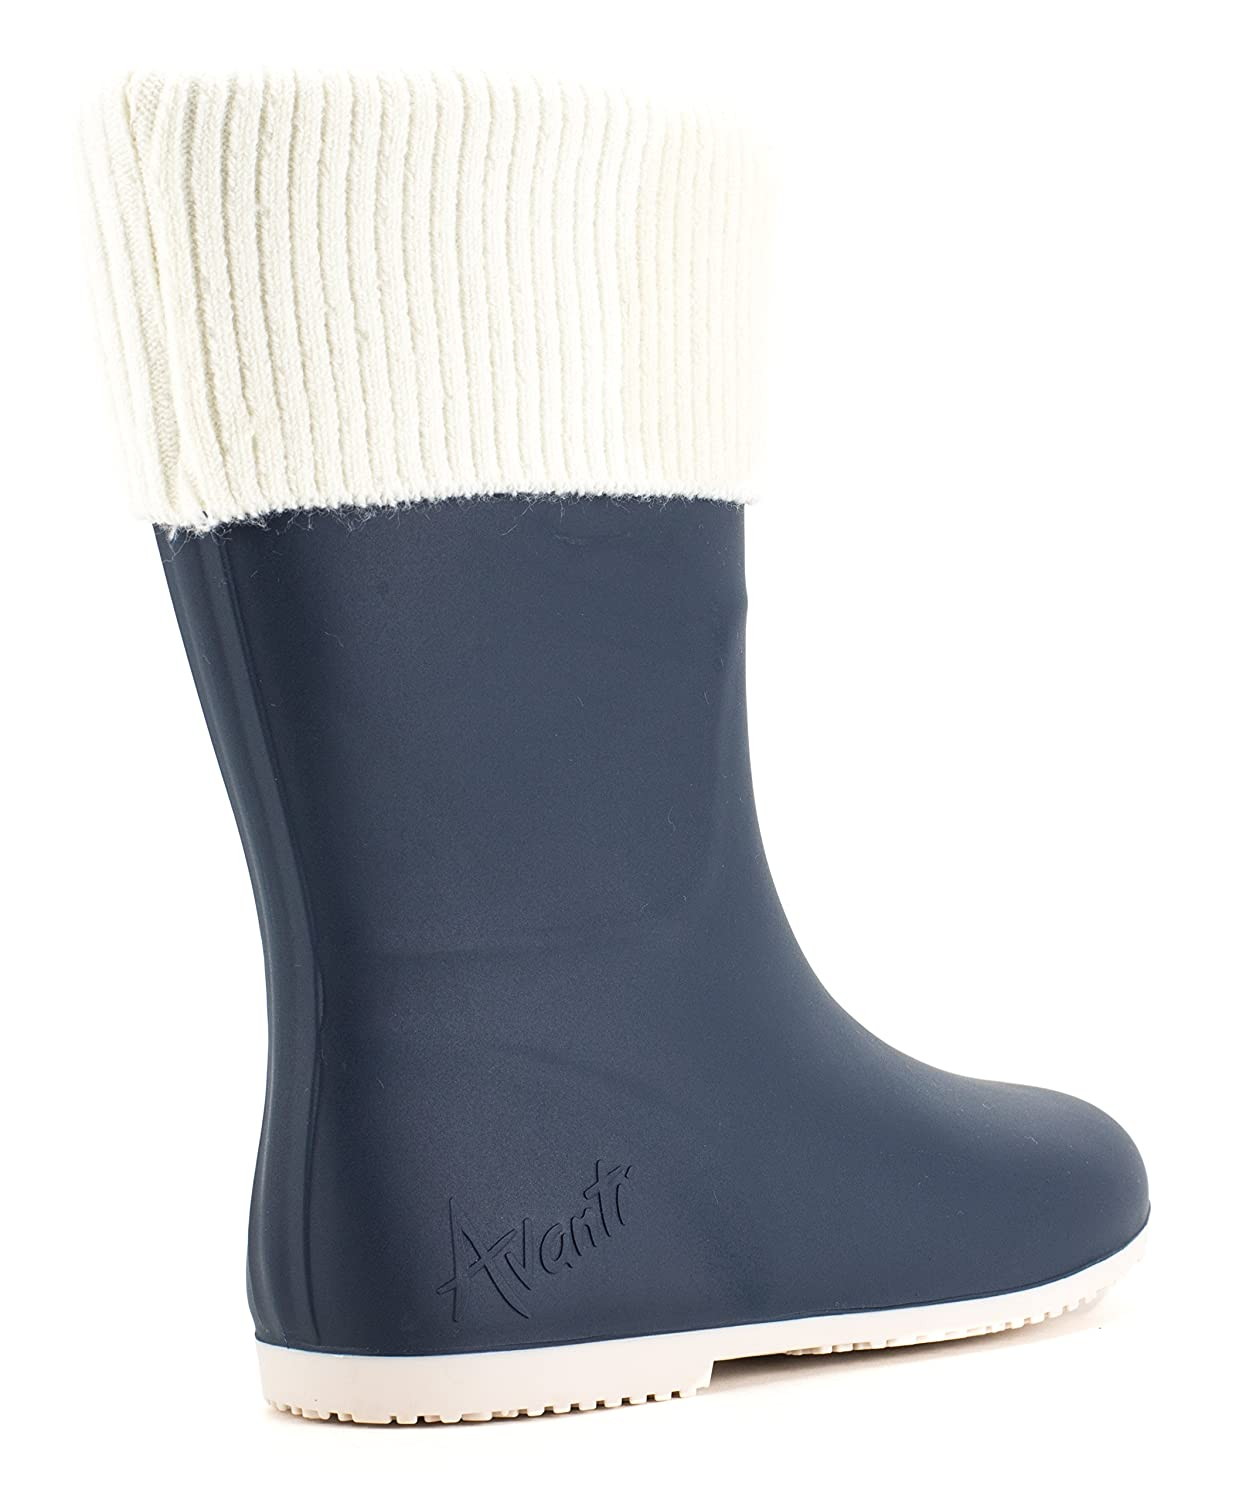 Avanti Storm Rain Boot Waterproof With Removable Knitted Cuff Monogram-Able Foldable B078SXHHNC 6 B(M) US|Navy and Cream